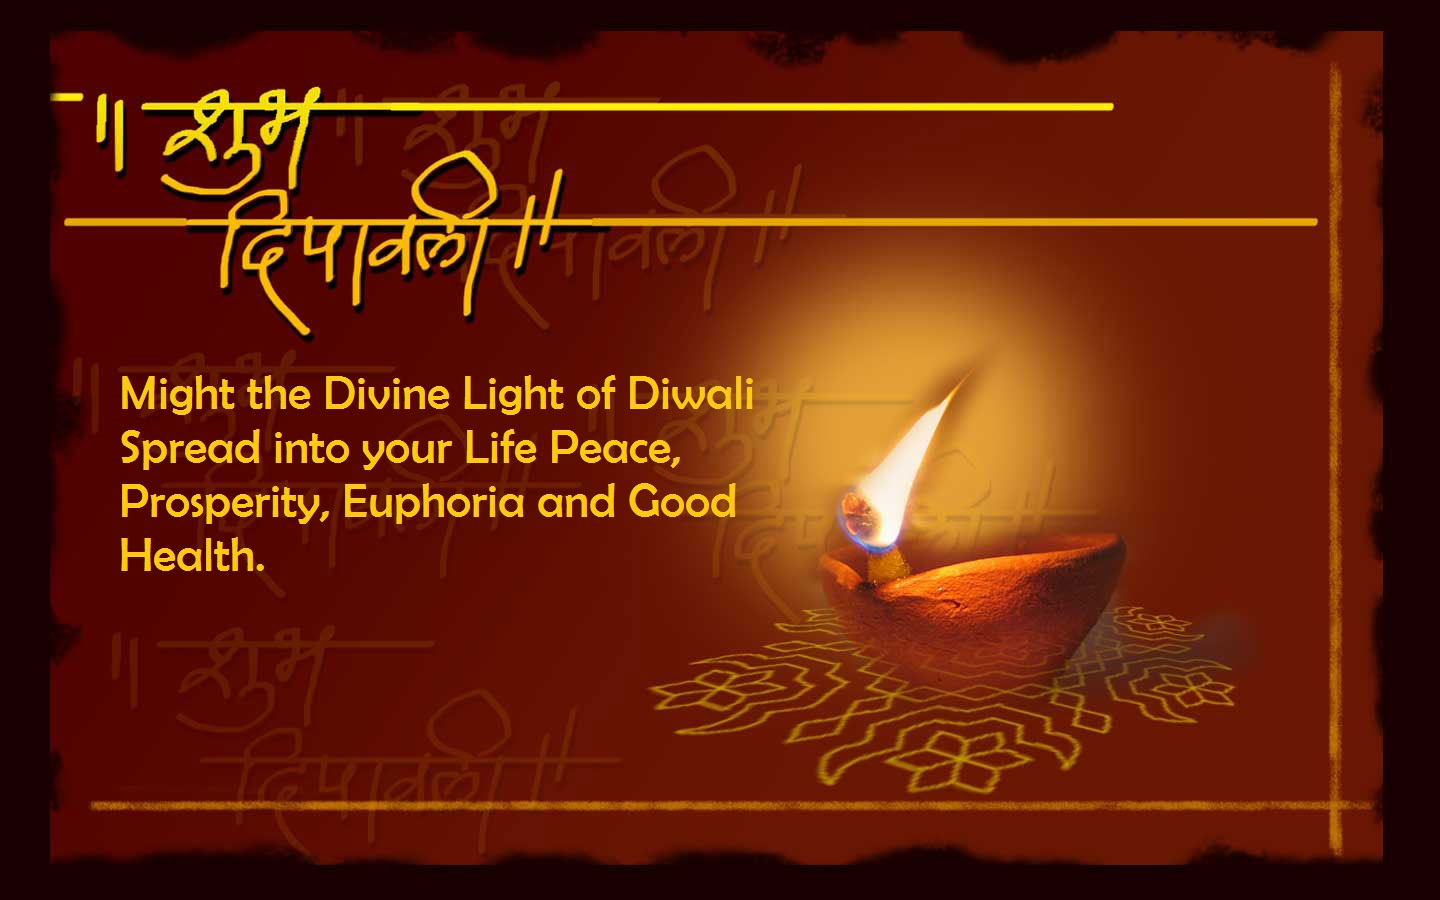 Happy Diwali 2016 Wishes & Greetings